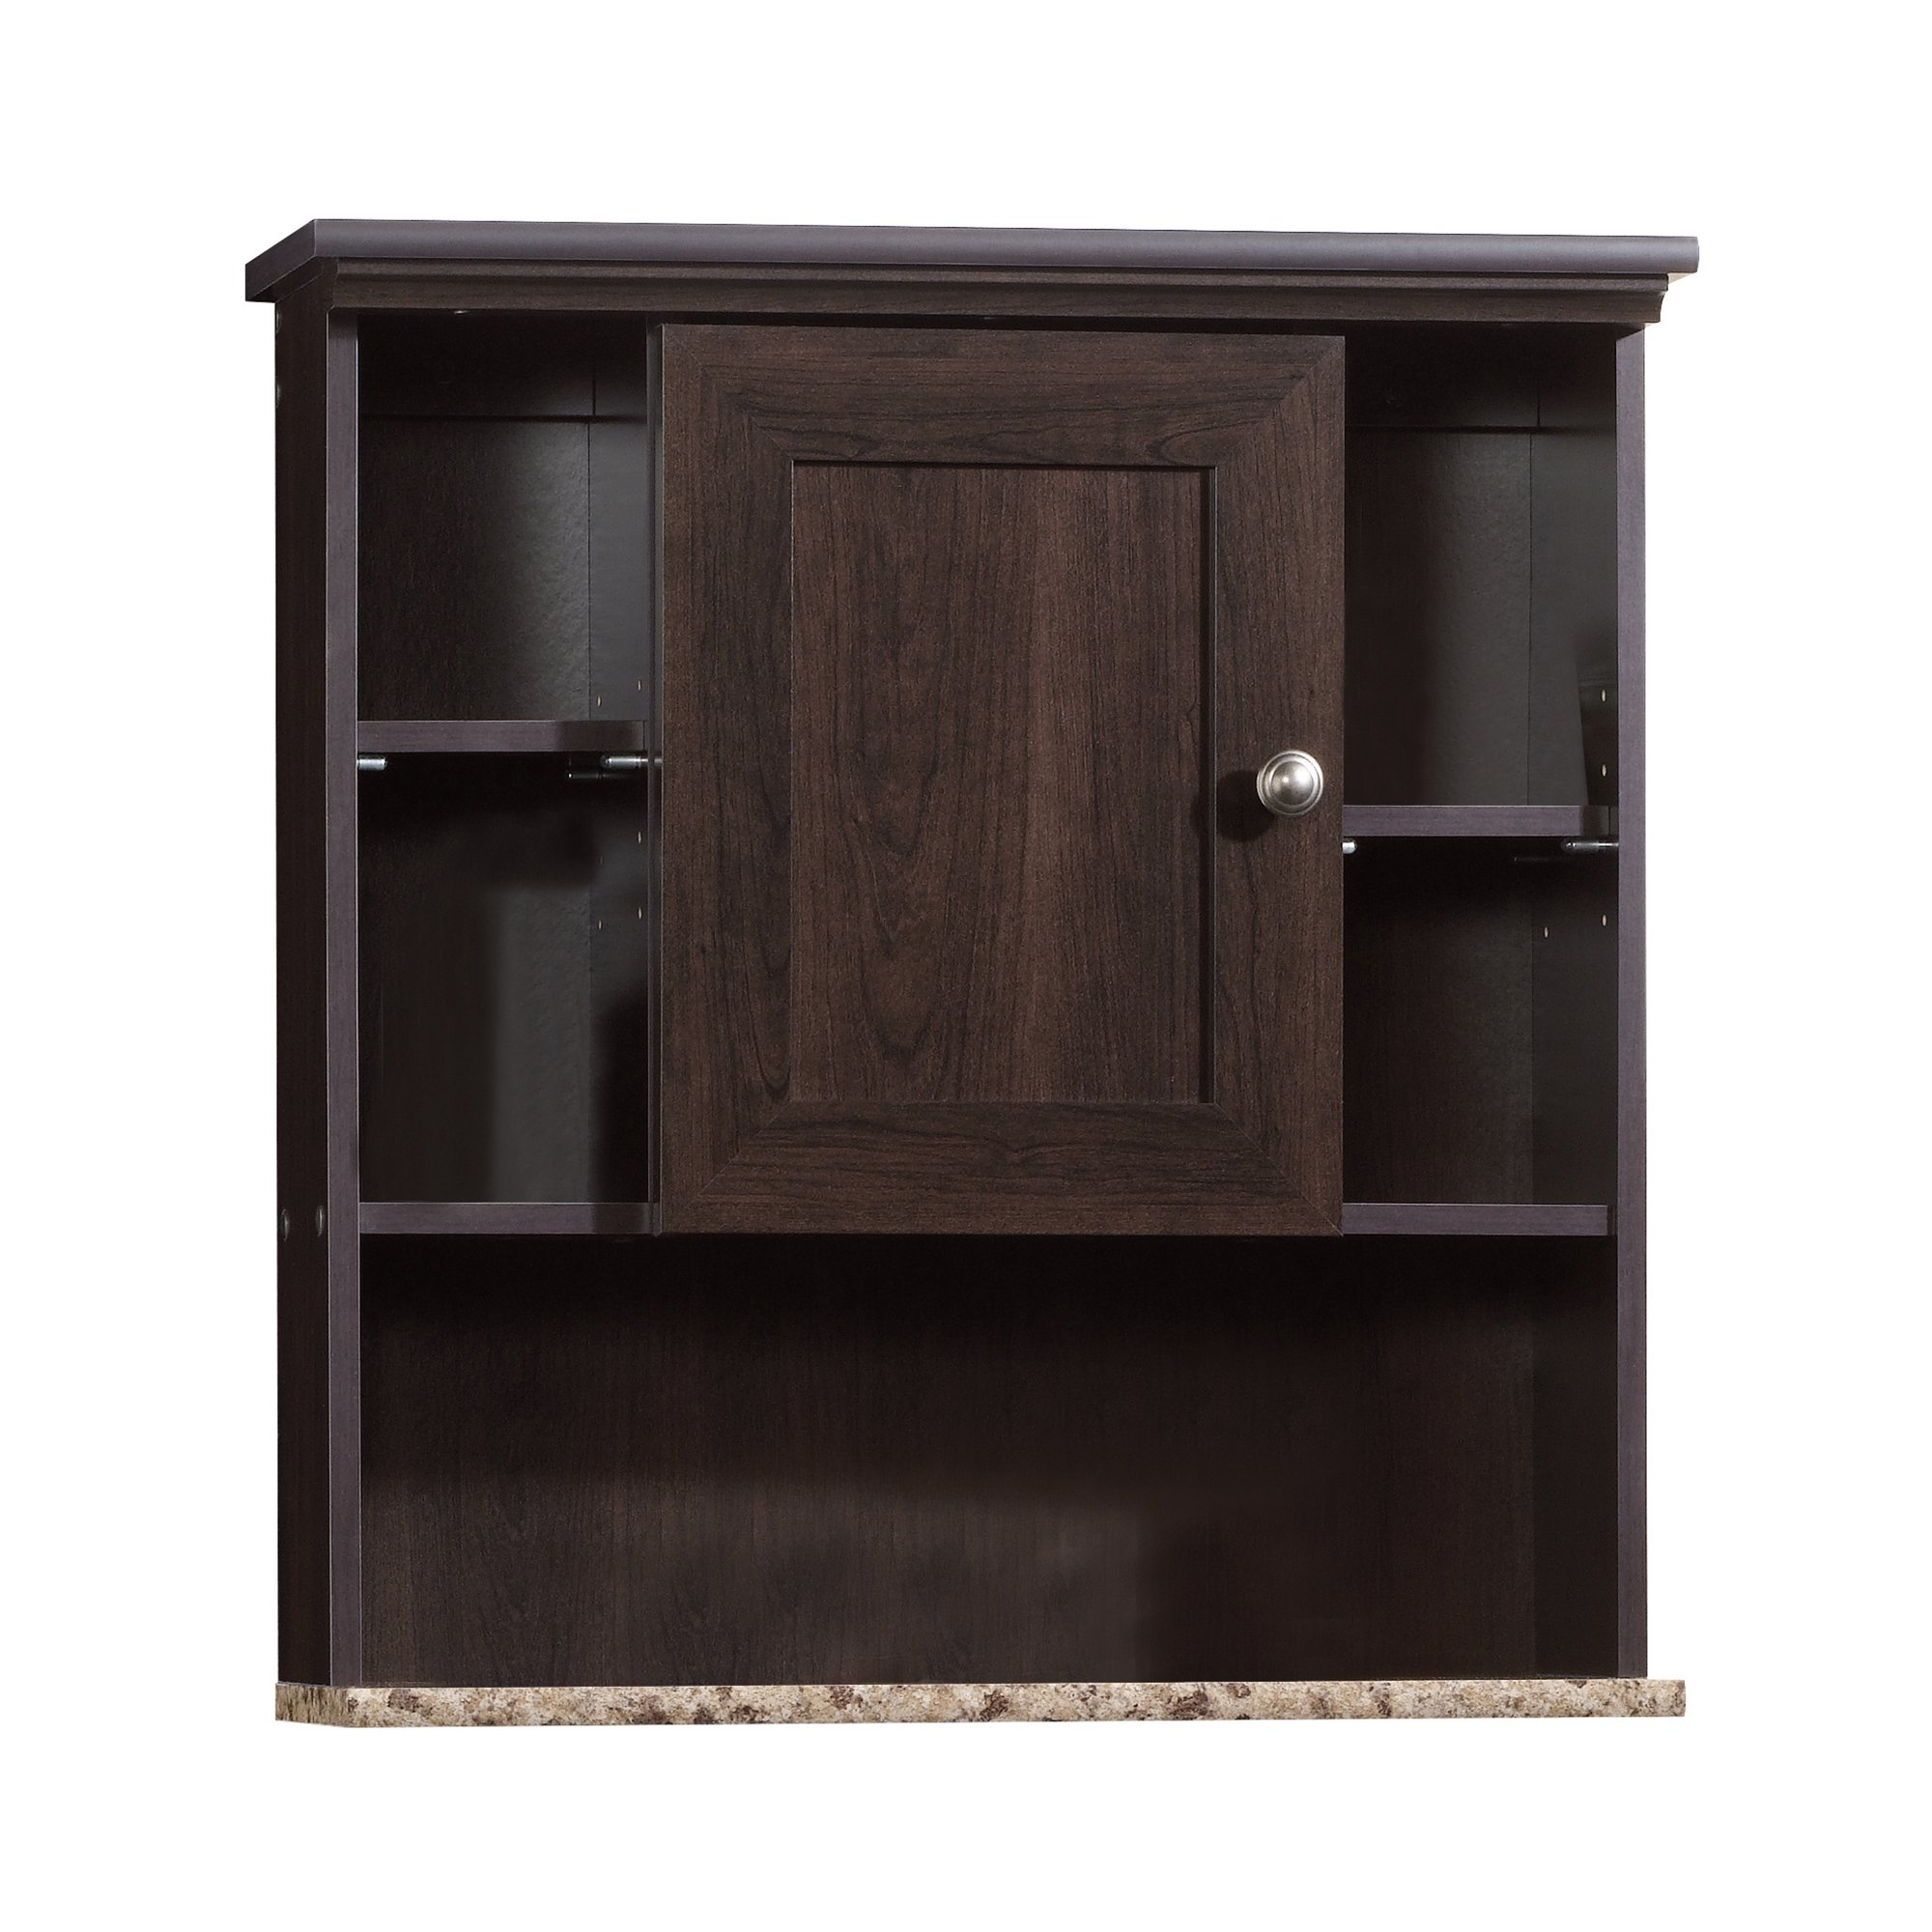 Sauder Wall Cabinet, Cinnamon Cherry Finish by Sauder (Image #2)